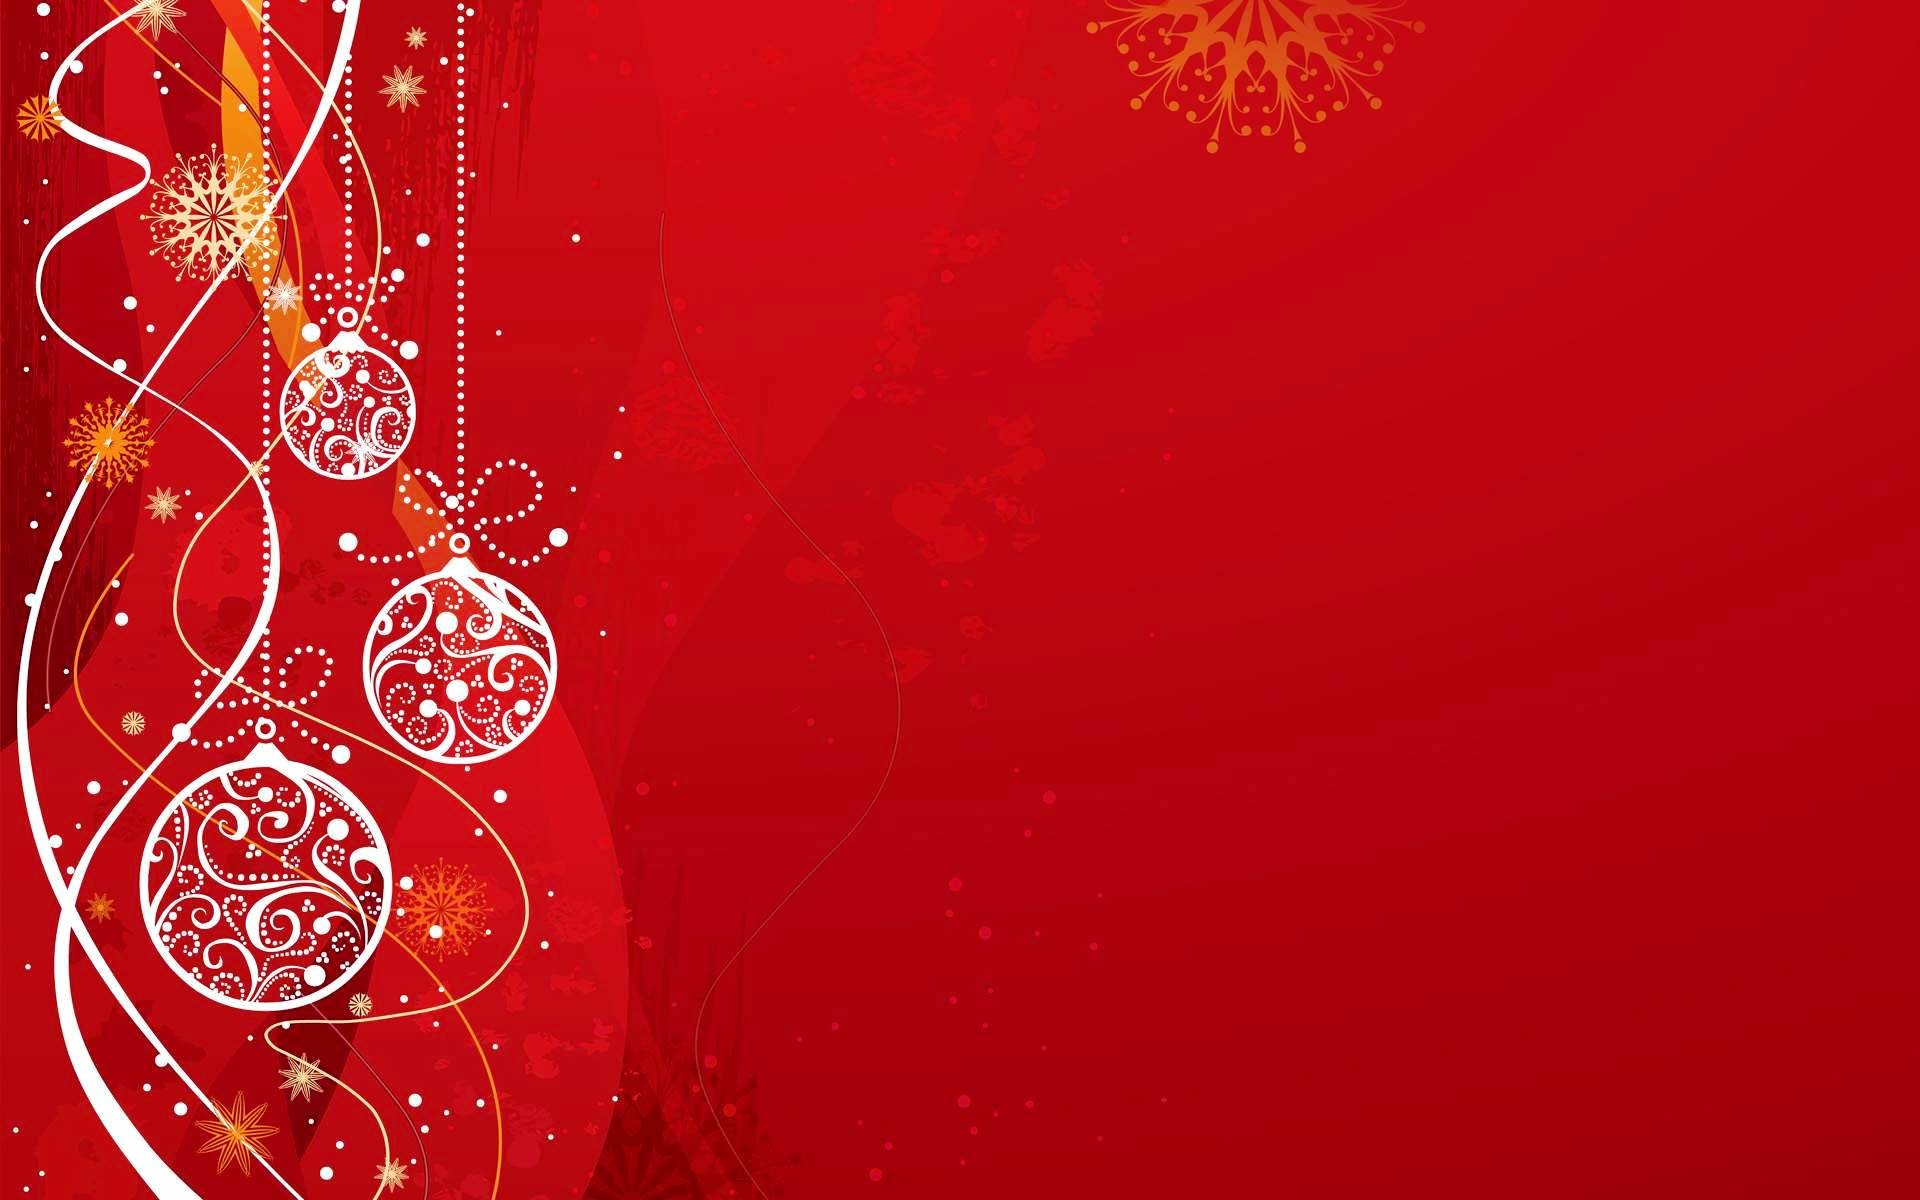 animated christmas wallpaper 58 images